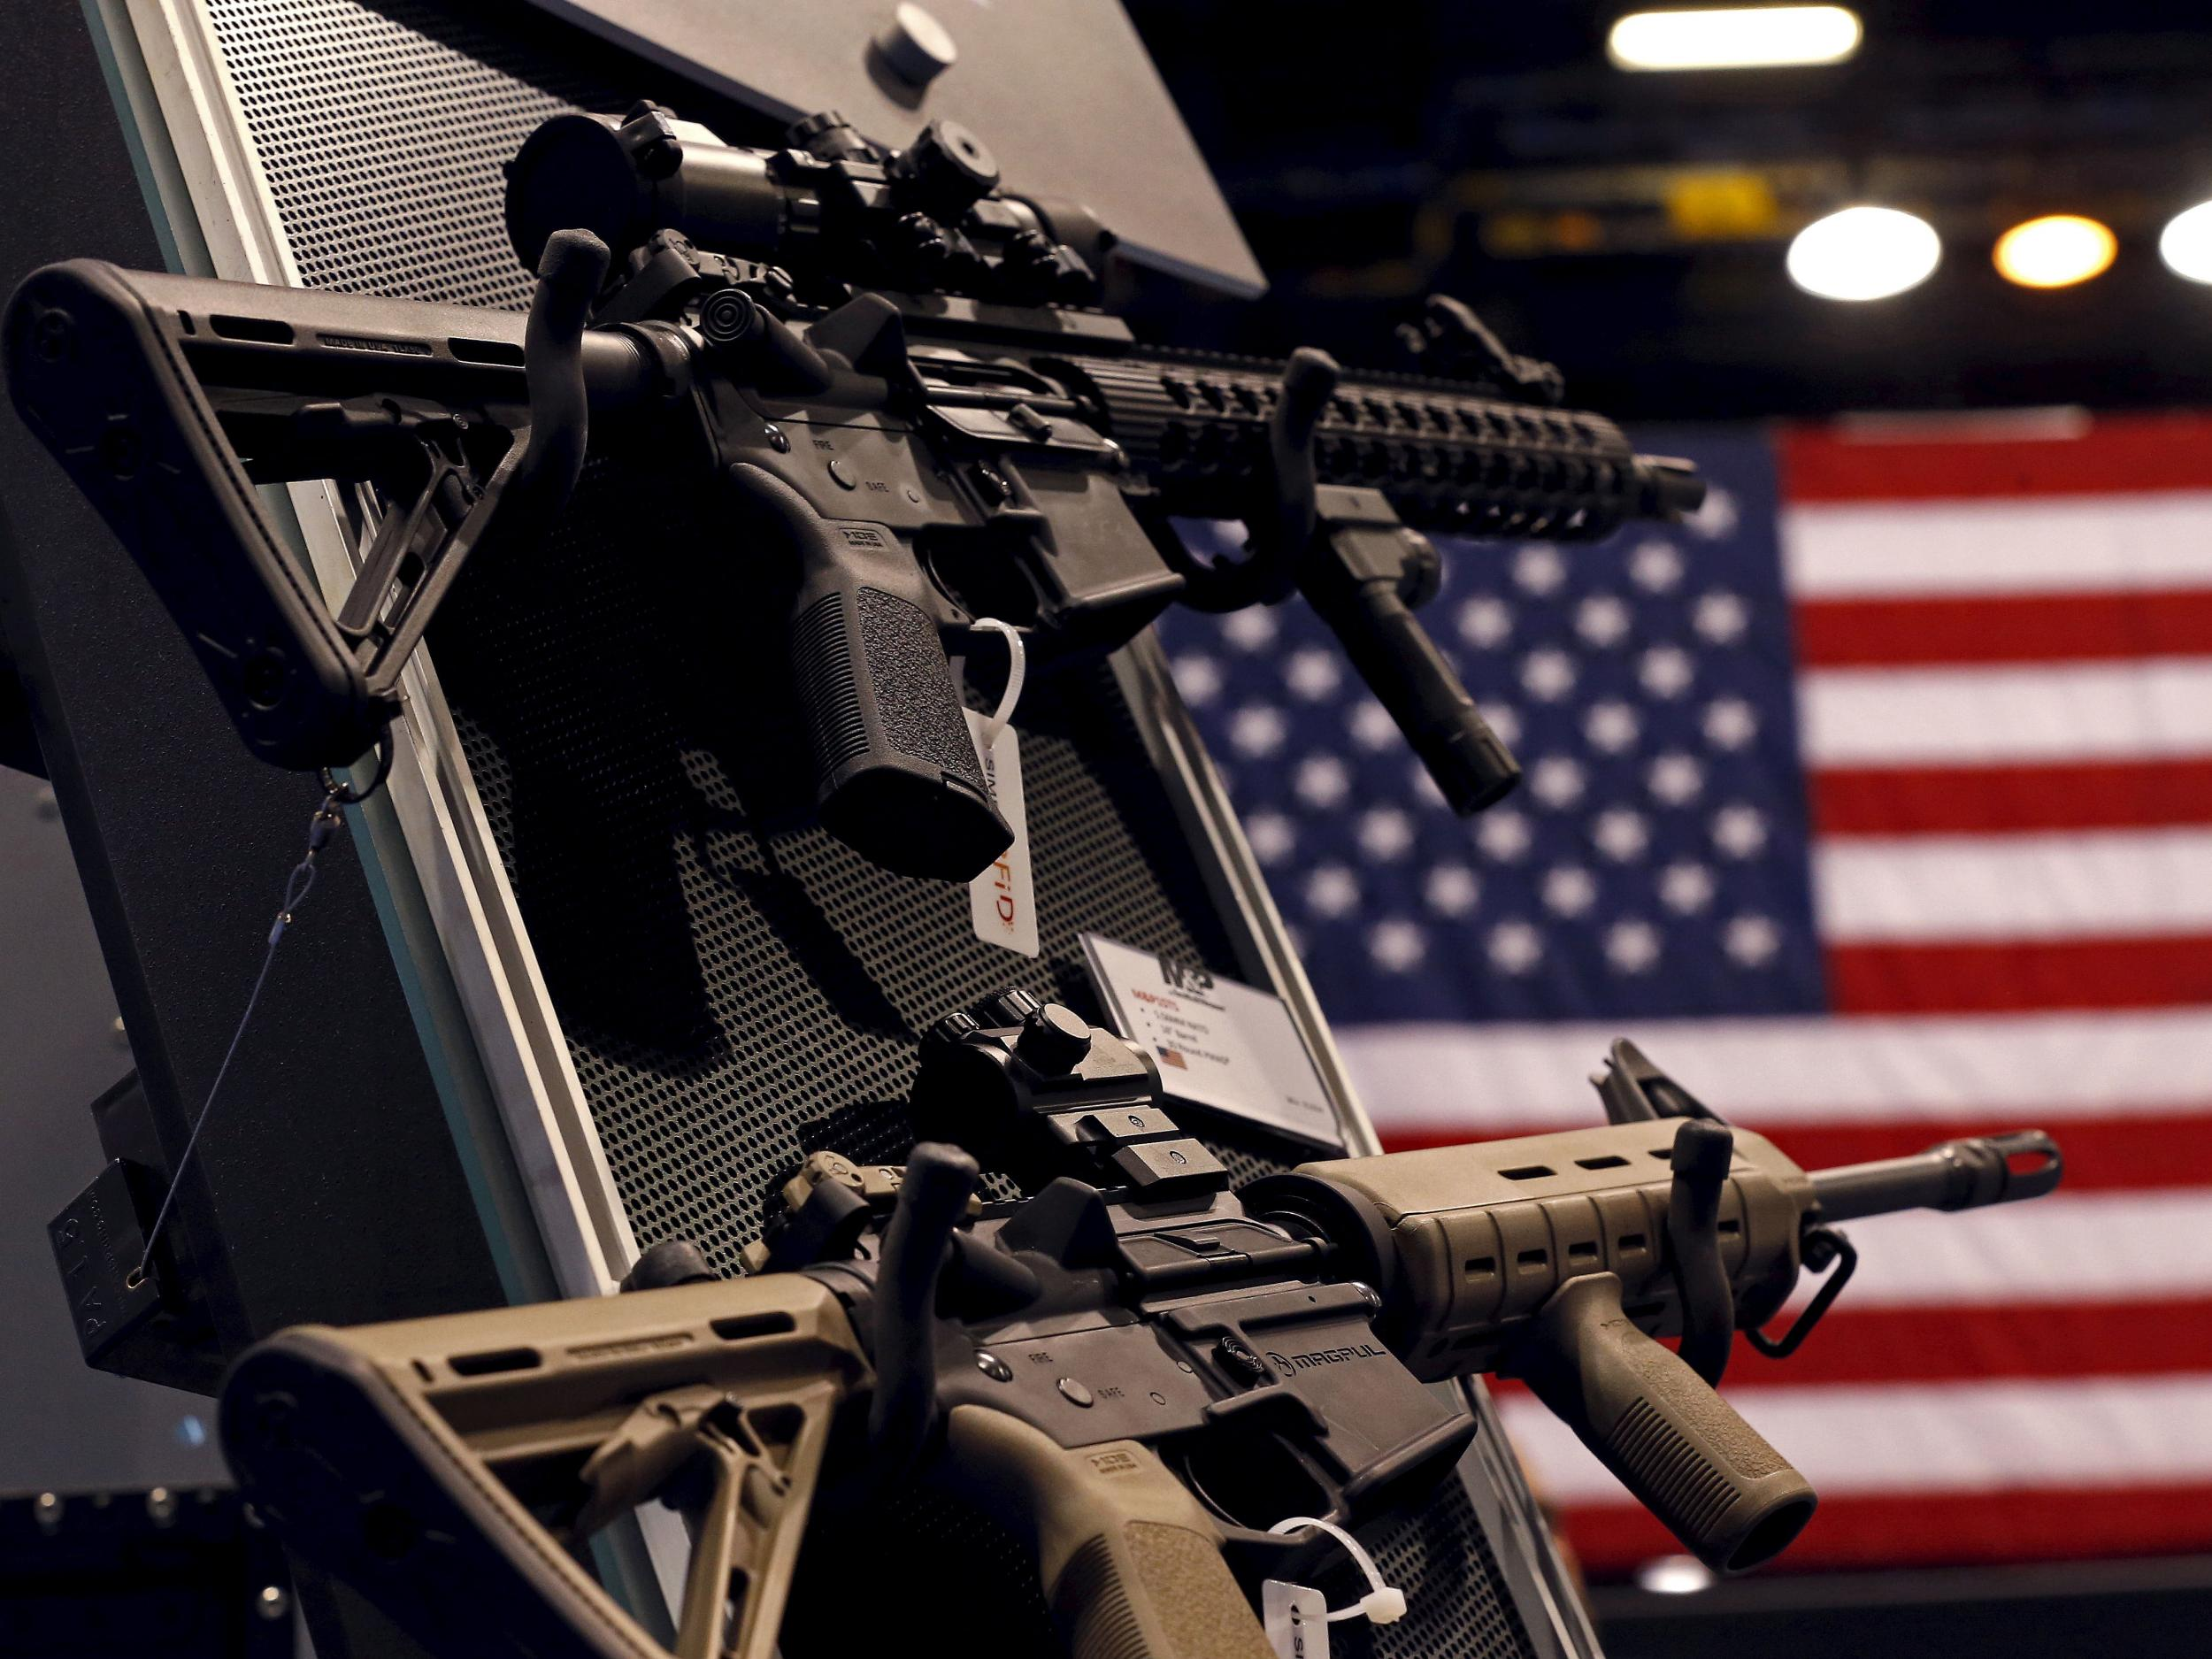 Donald Trump is trying to make it easier for US gun makers to sell firearms abroad